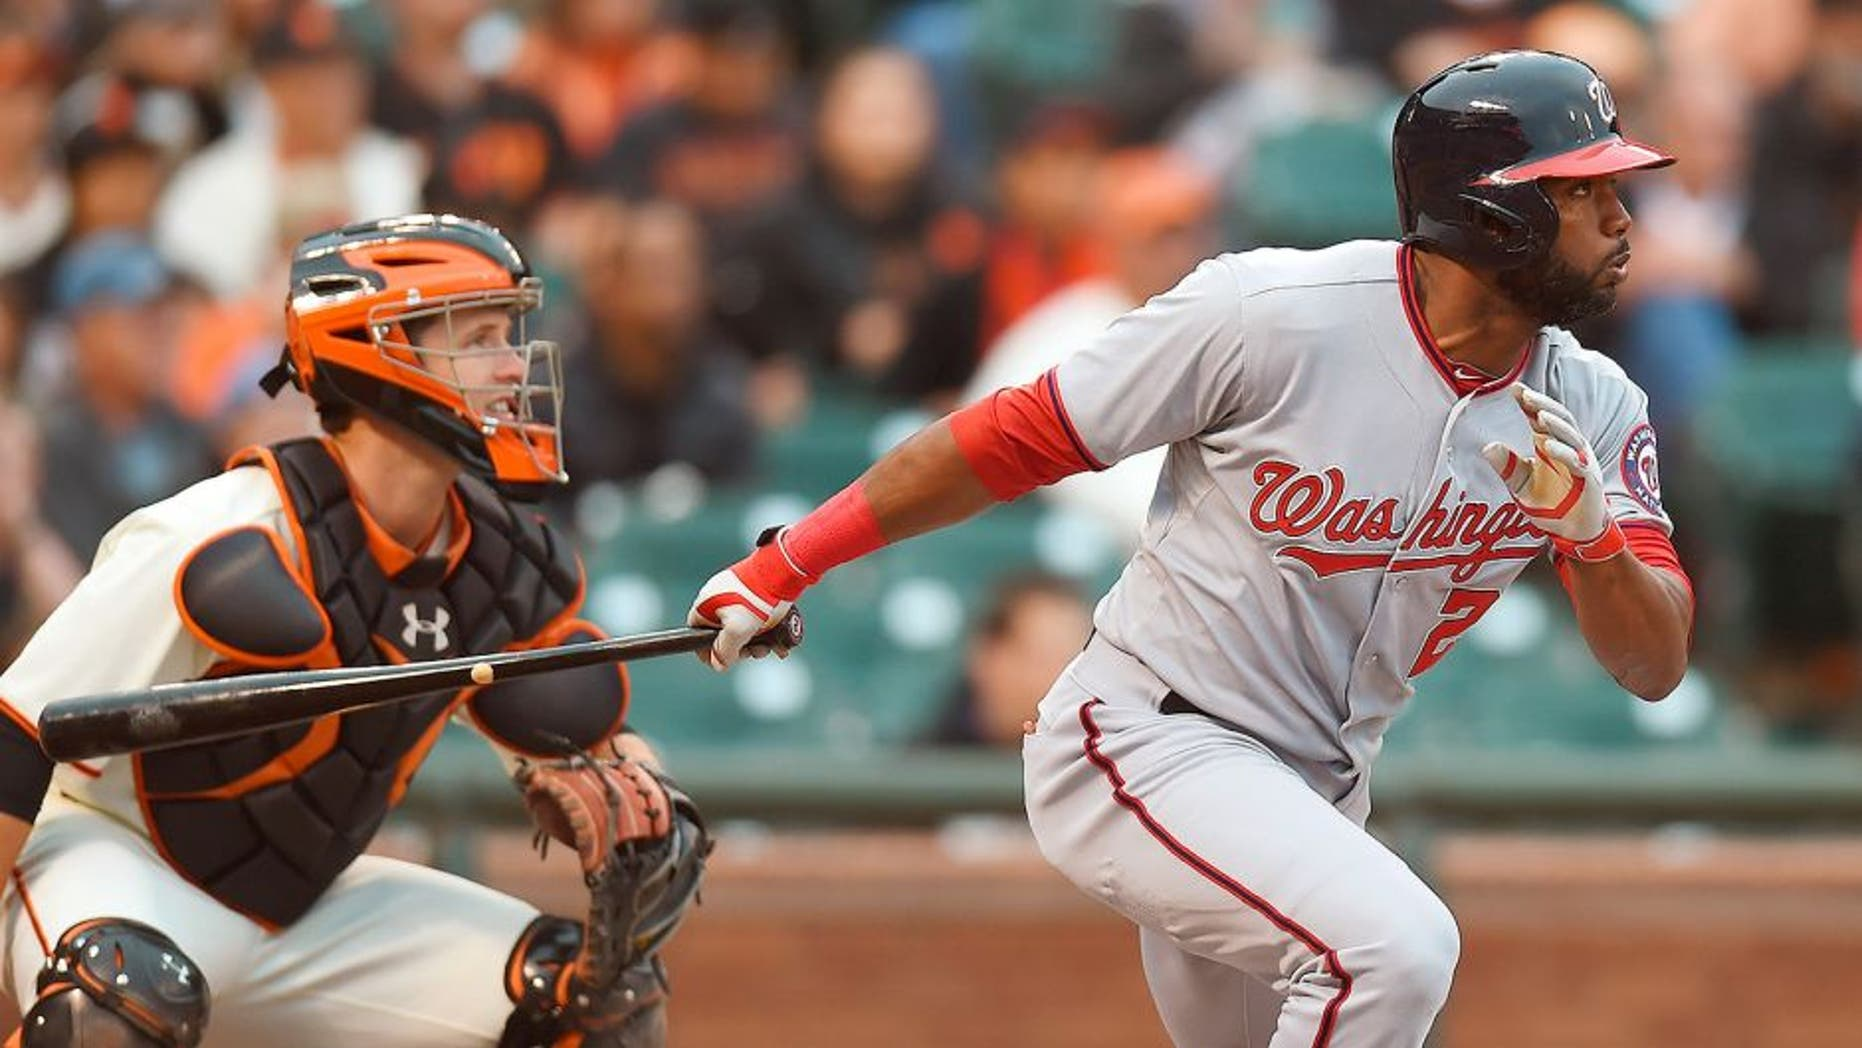 SAN FRANCISCO, CA - JUNE 10: Denard Span #2 of the Washington Nationals bats in the top of the first inning against the San Francisco Giants at AT&T Park on June 10, 2014 in San Francisco, California. (Photo by Thearon W. Henderson/Getty Images) *** Local Caption *** Denard Span